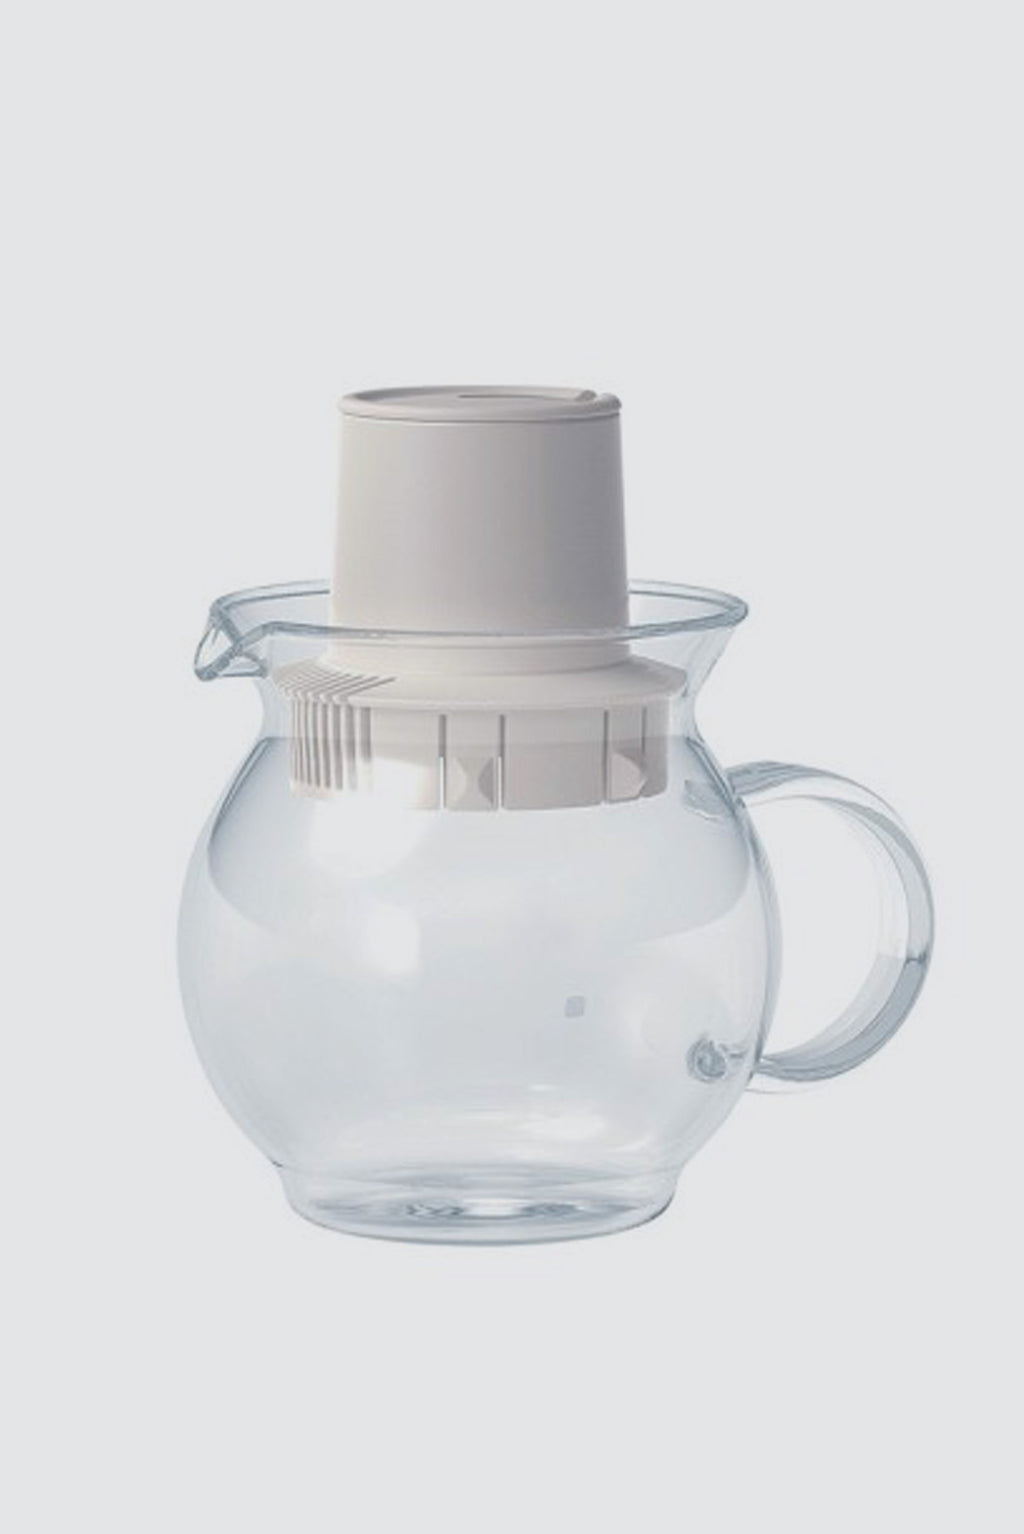 Hario Tea Hat Tea Pot